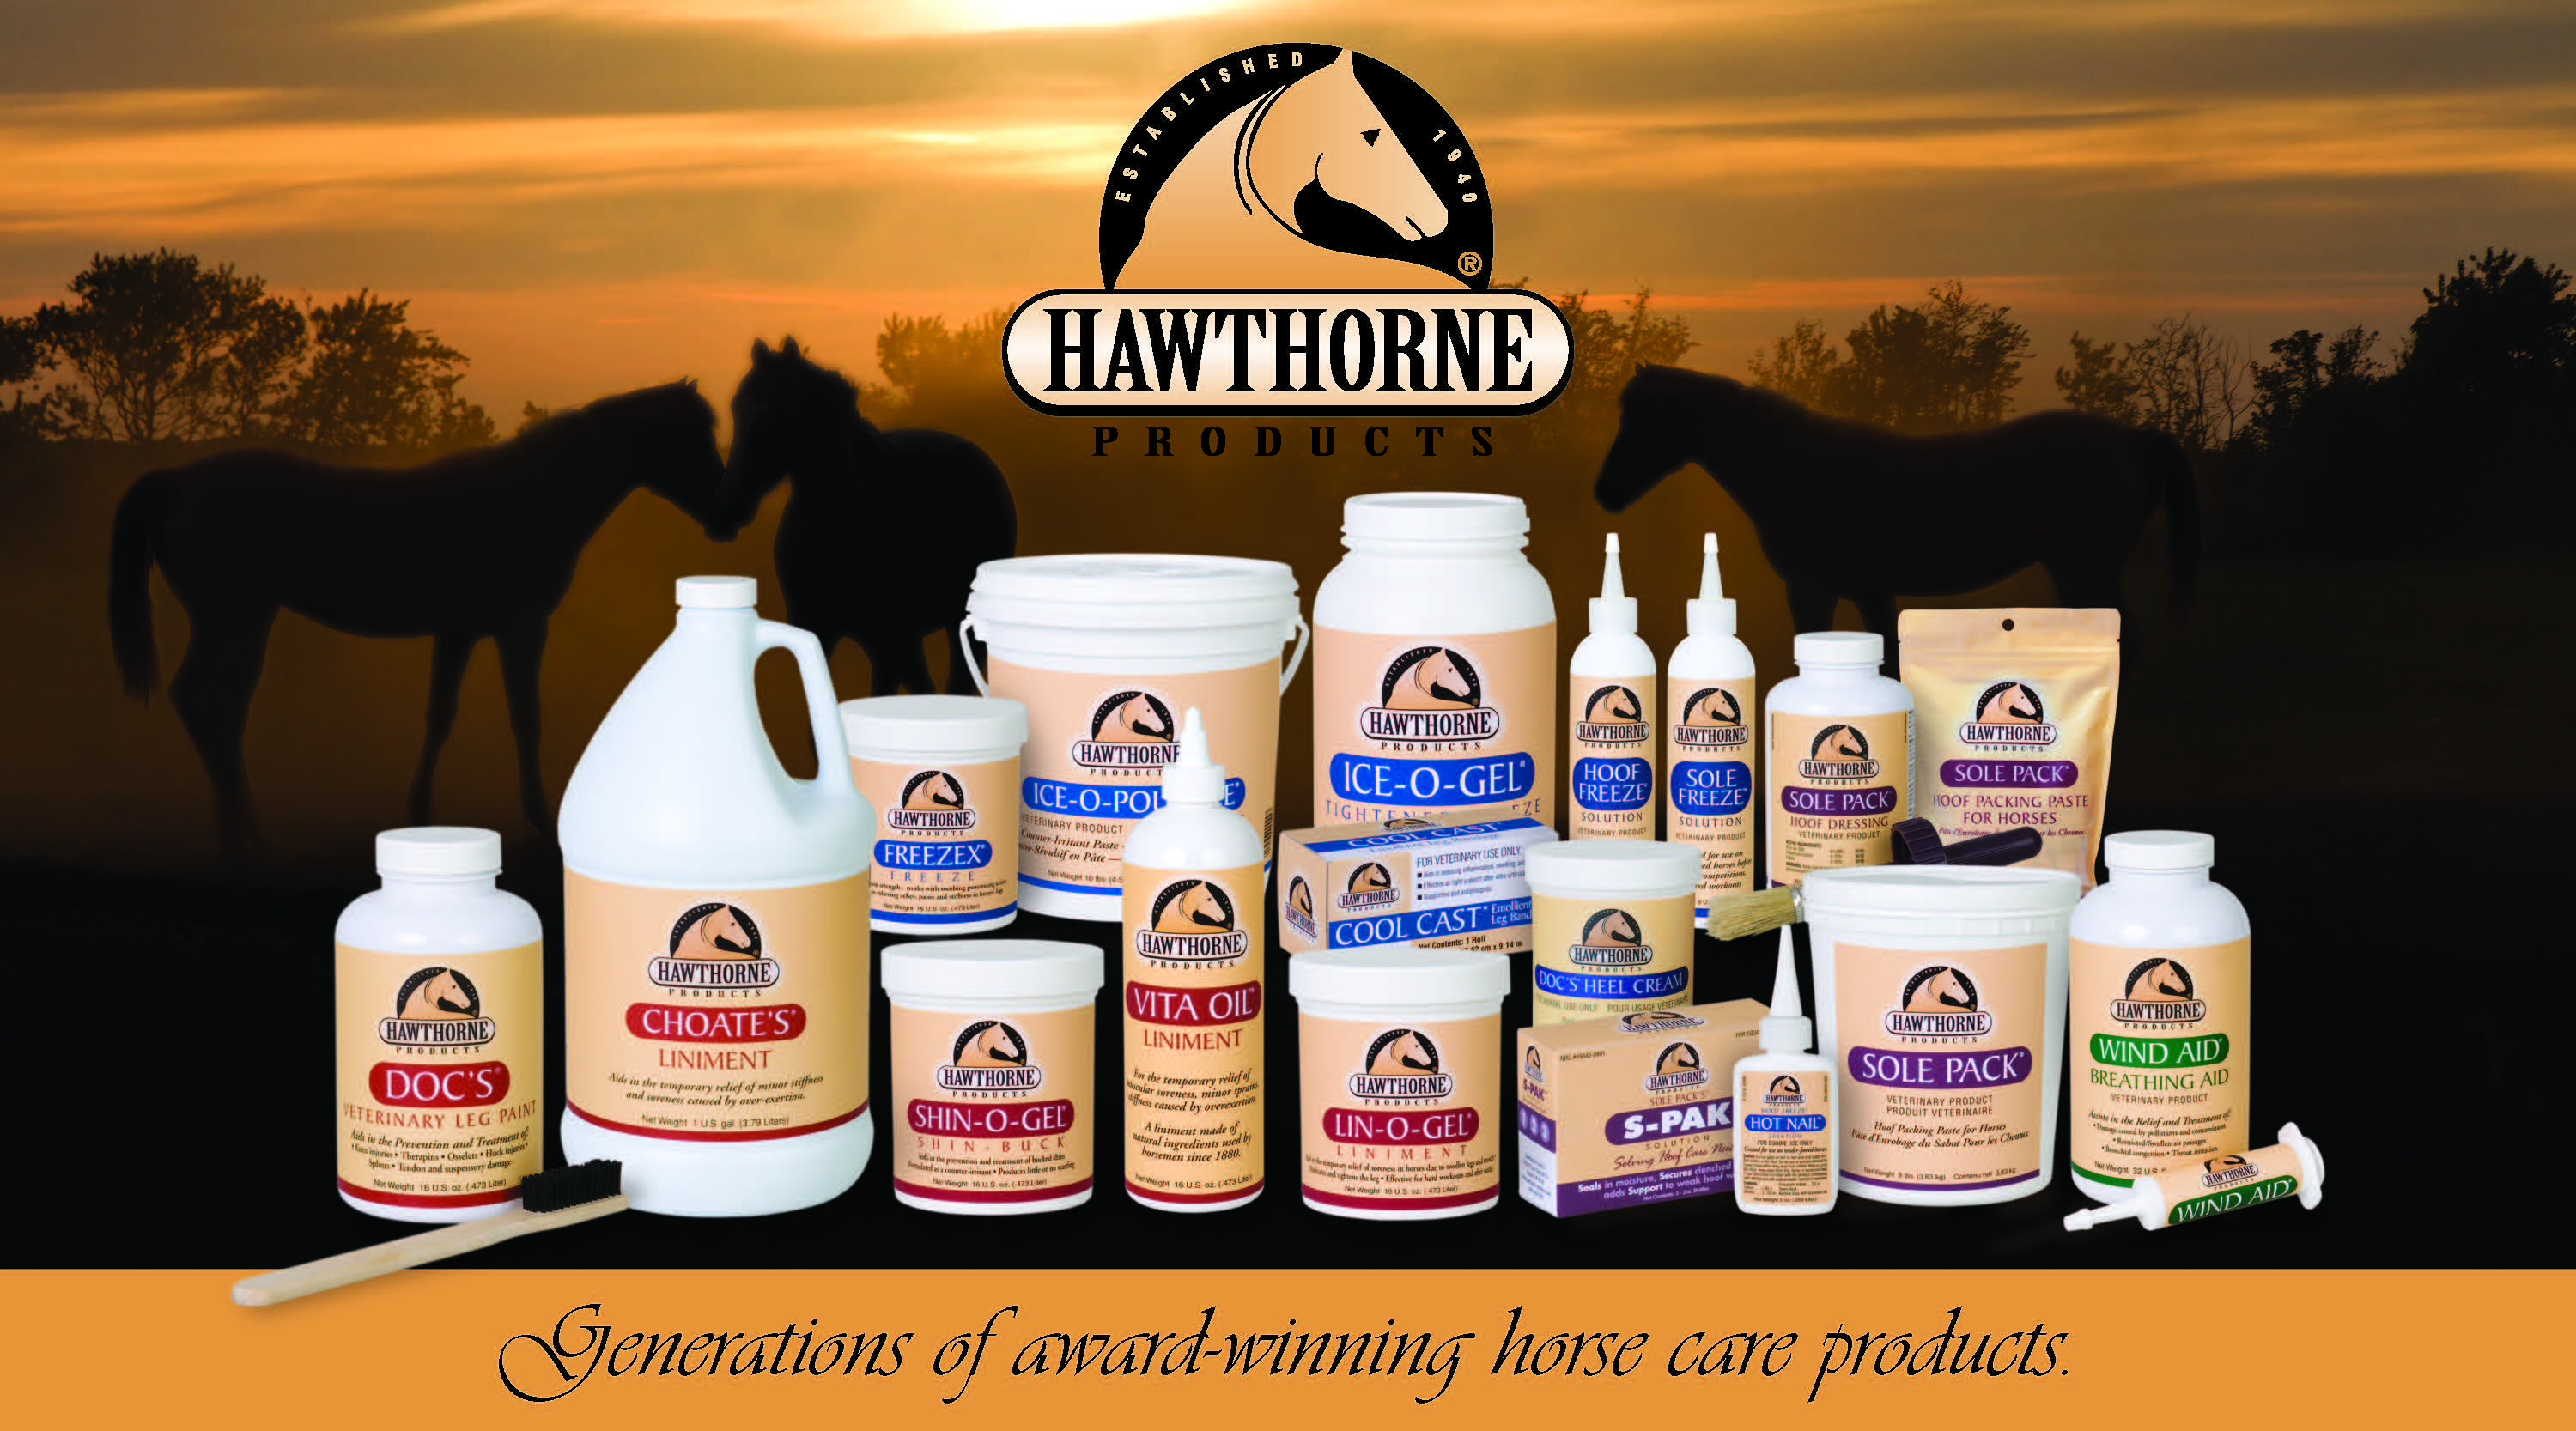 Shop Hawthorne Products at Jacks Inc.